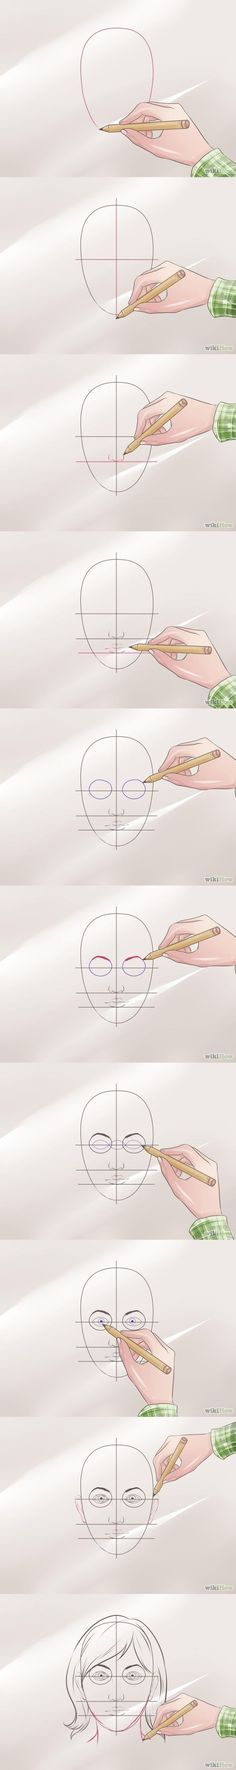 How to draw a face Step by step tutorial Wikihow #draw #face #drawing #how to by JenJennn